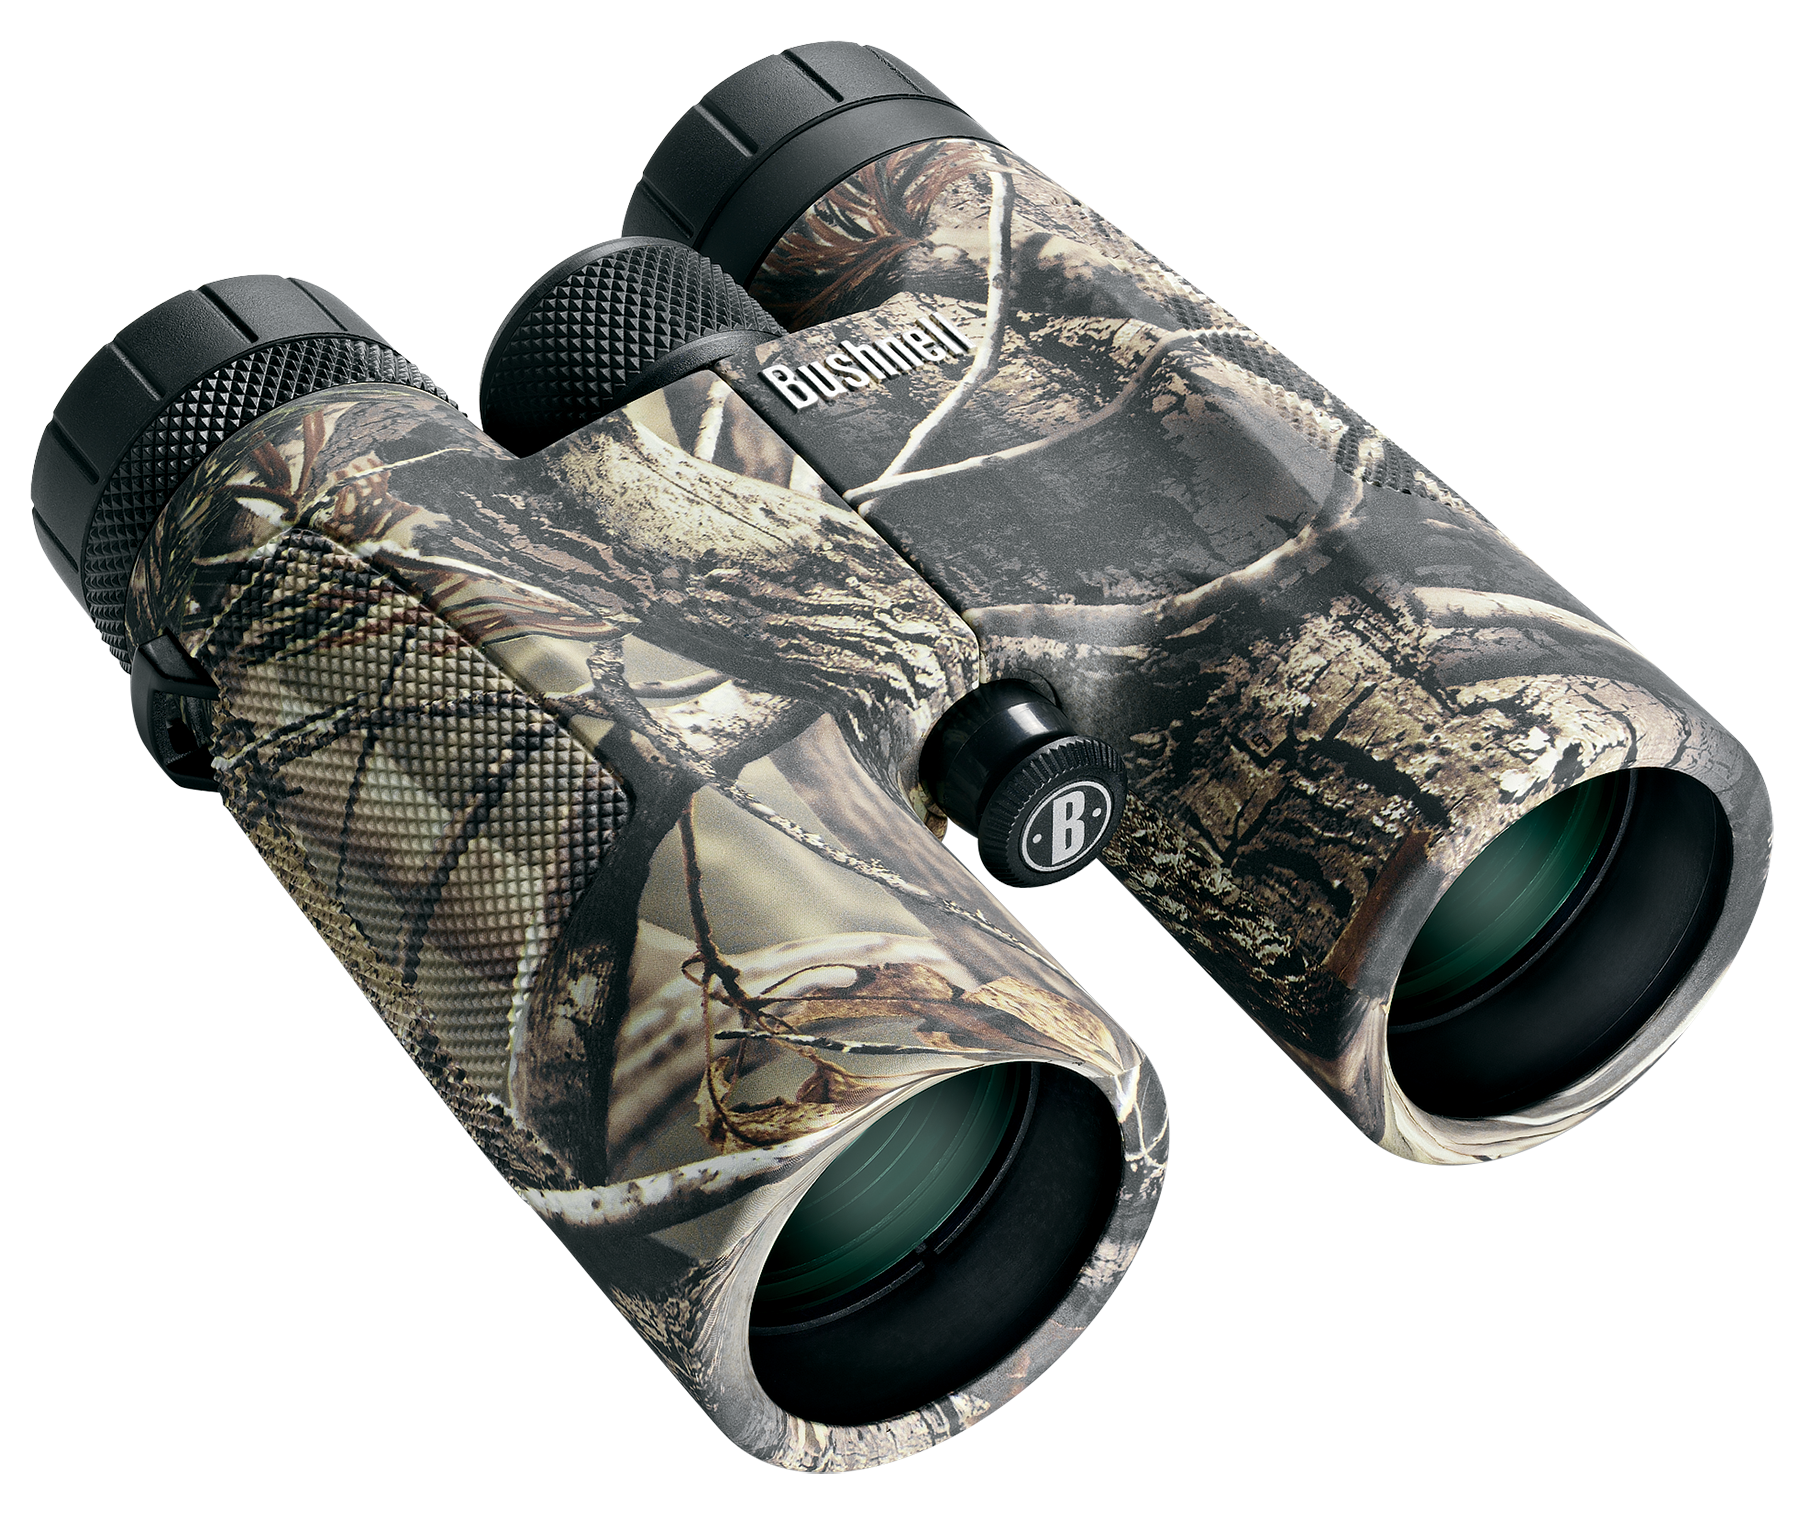 Bushnell 141043 Powerview 10x 42mm 293 ft @ 1000 yds FOV 17.5mm Eye Relief Realtree AP Rubber Armor